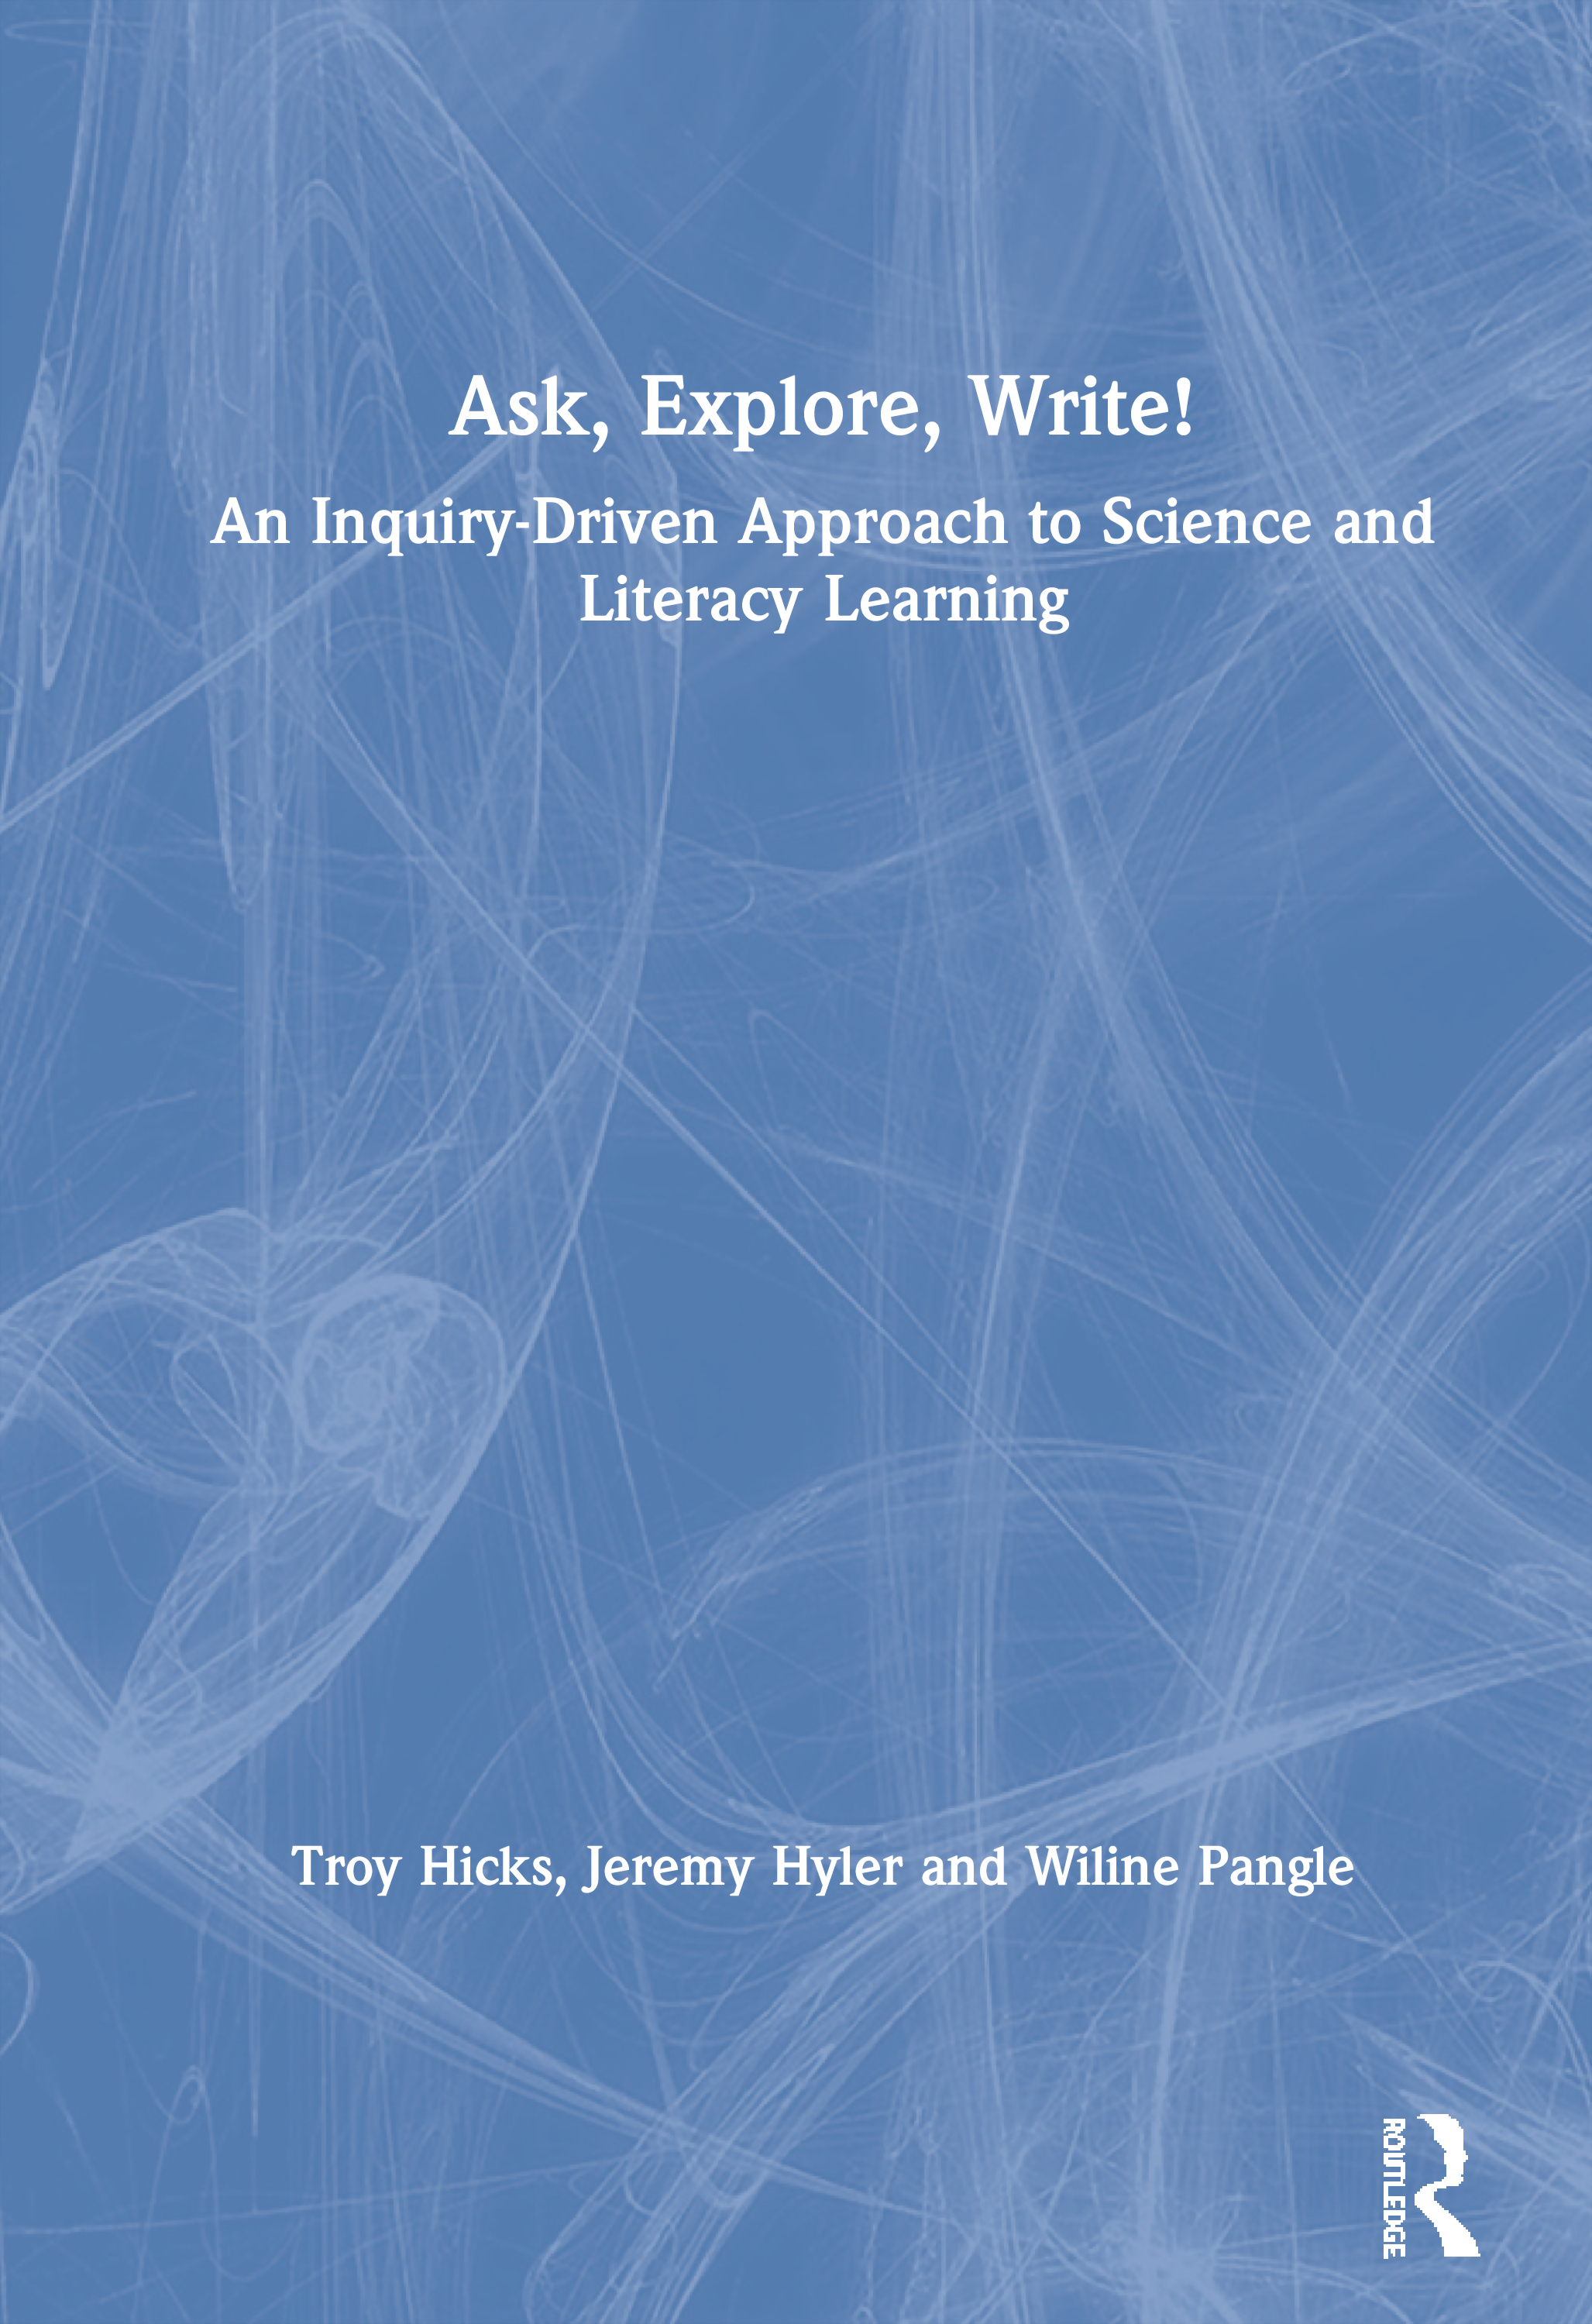 Ask, Explore, Write!: An Inquiry-Driven Approach to Science and Literacy Learning book cover